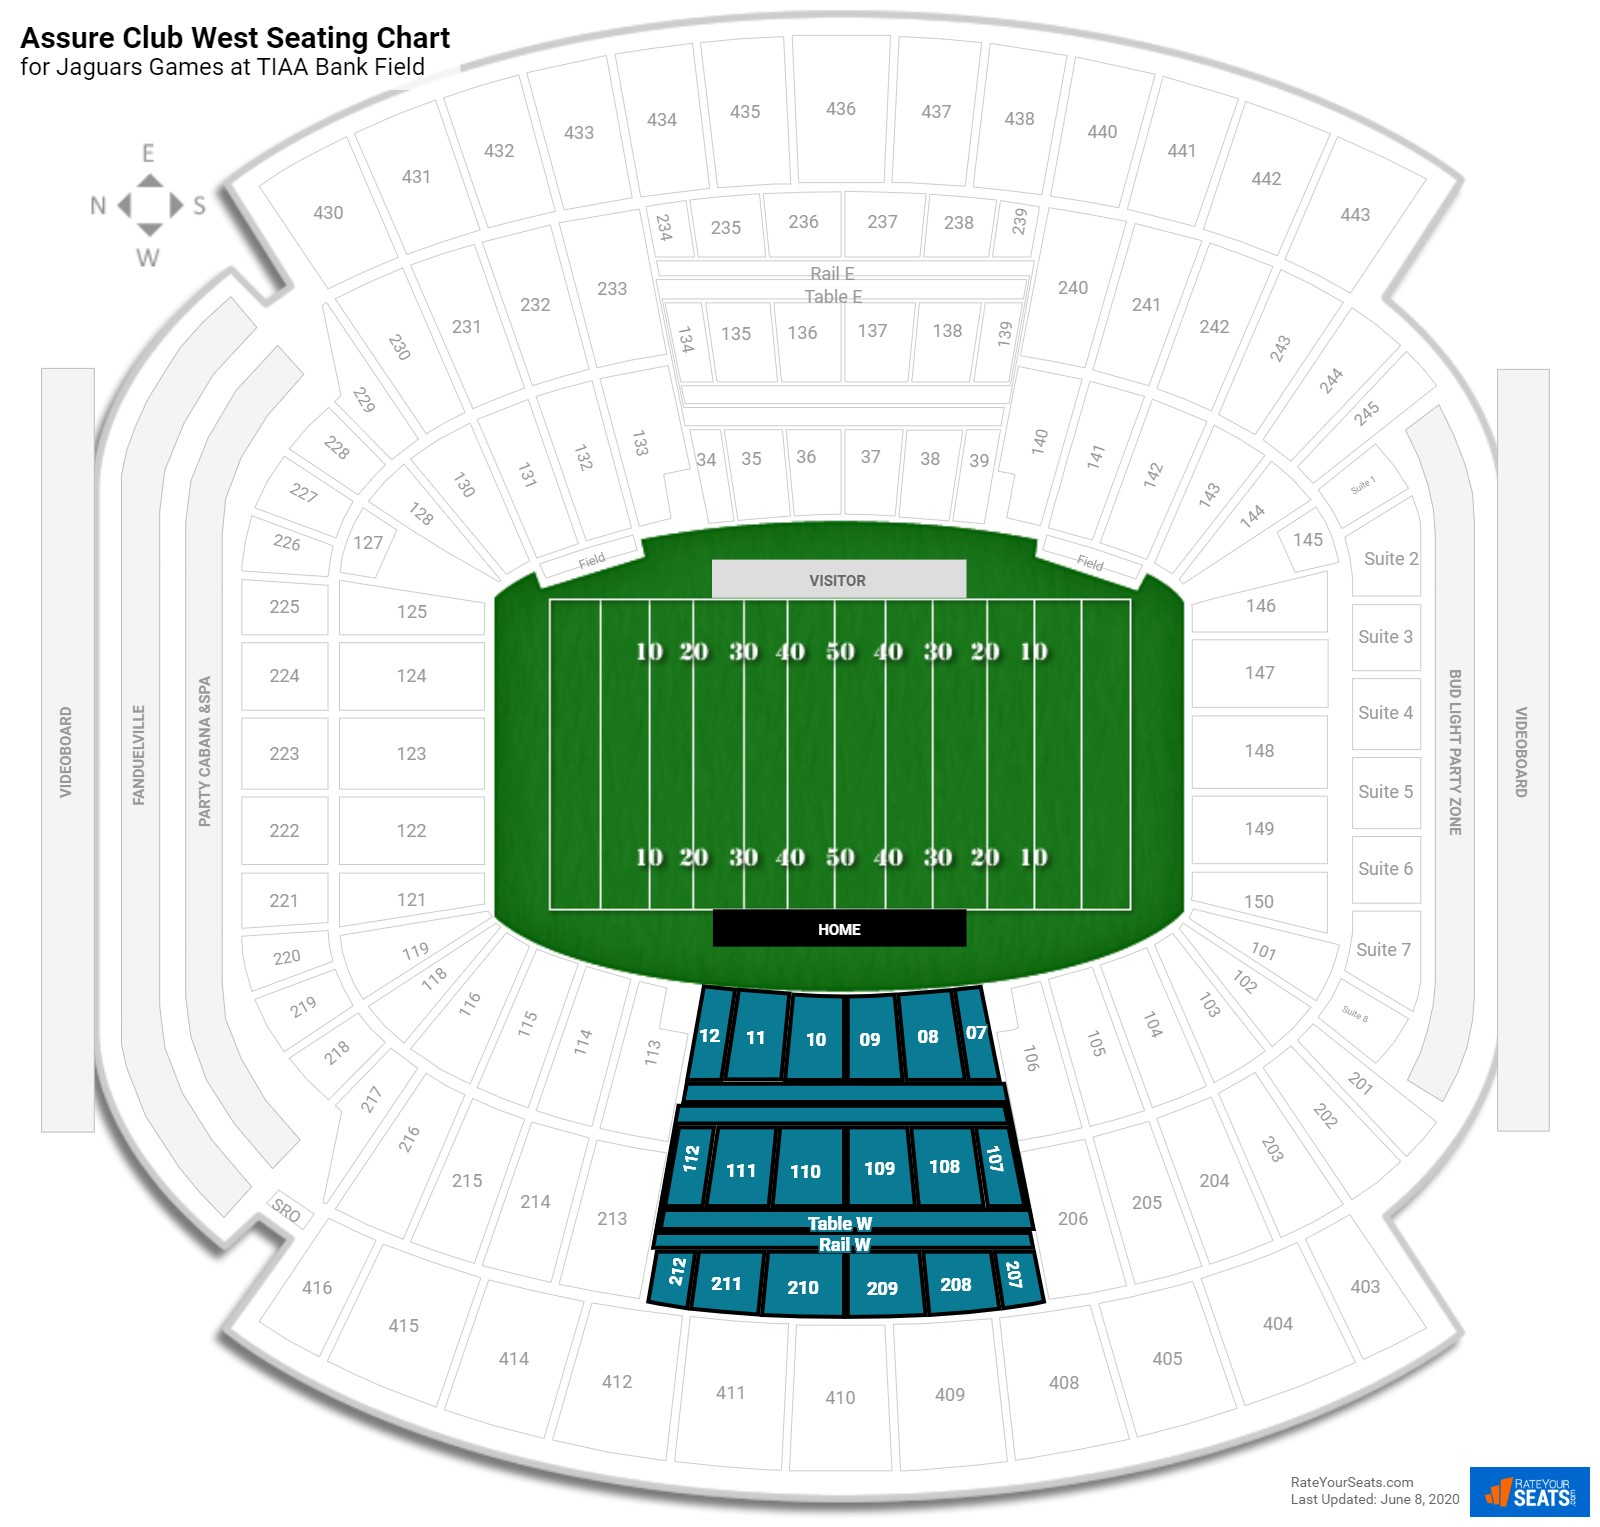 EverBank Field Assure Club West seating chart